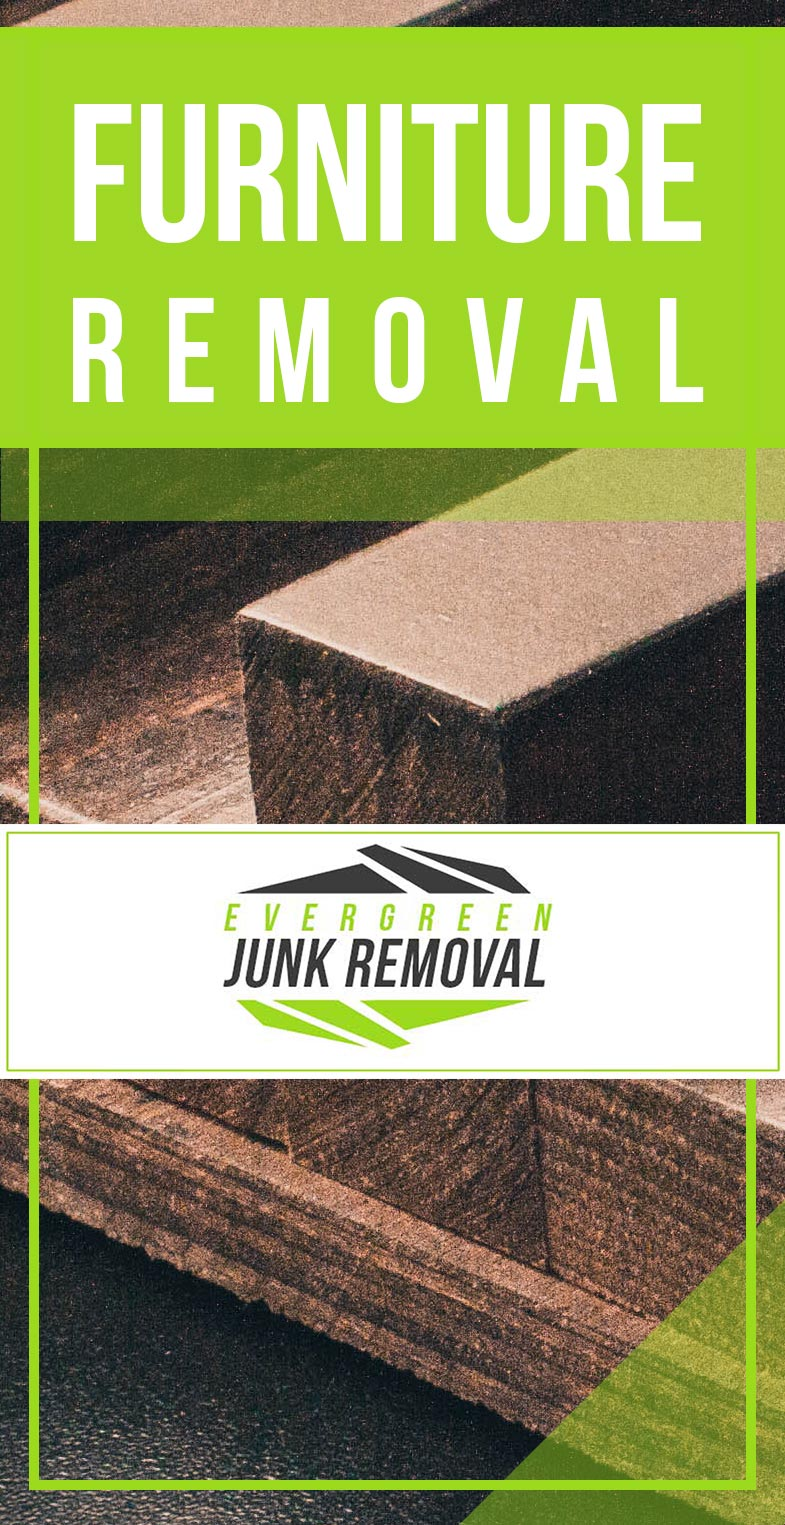 Junk Removal Tamarac Furniture Removal